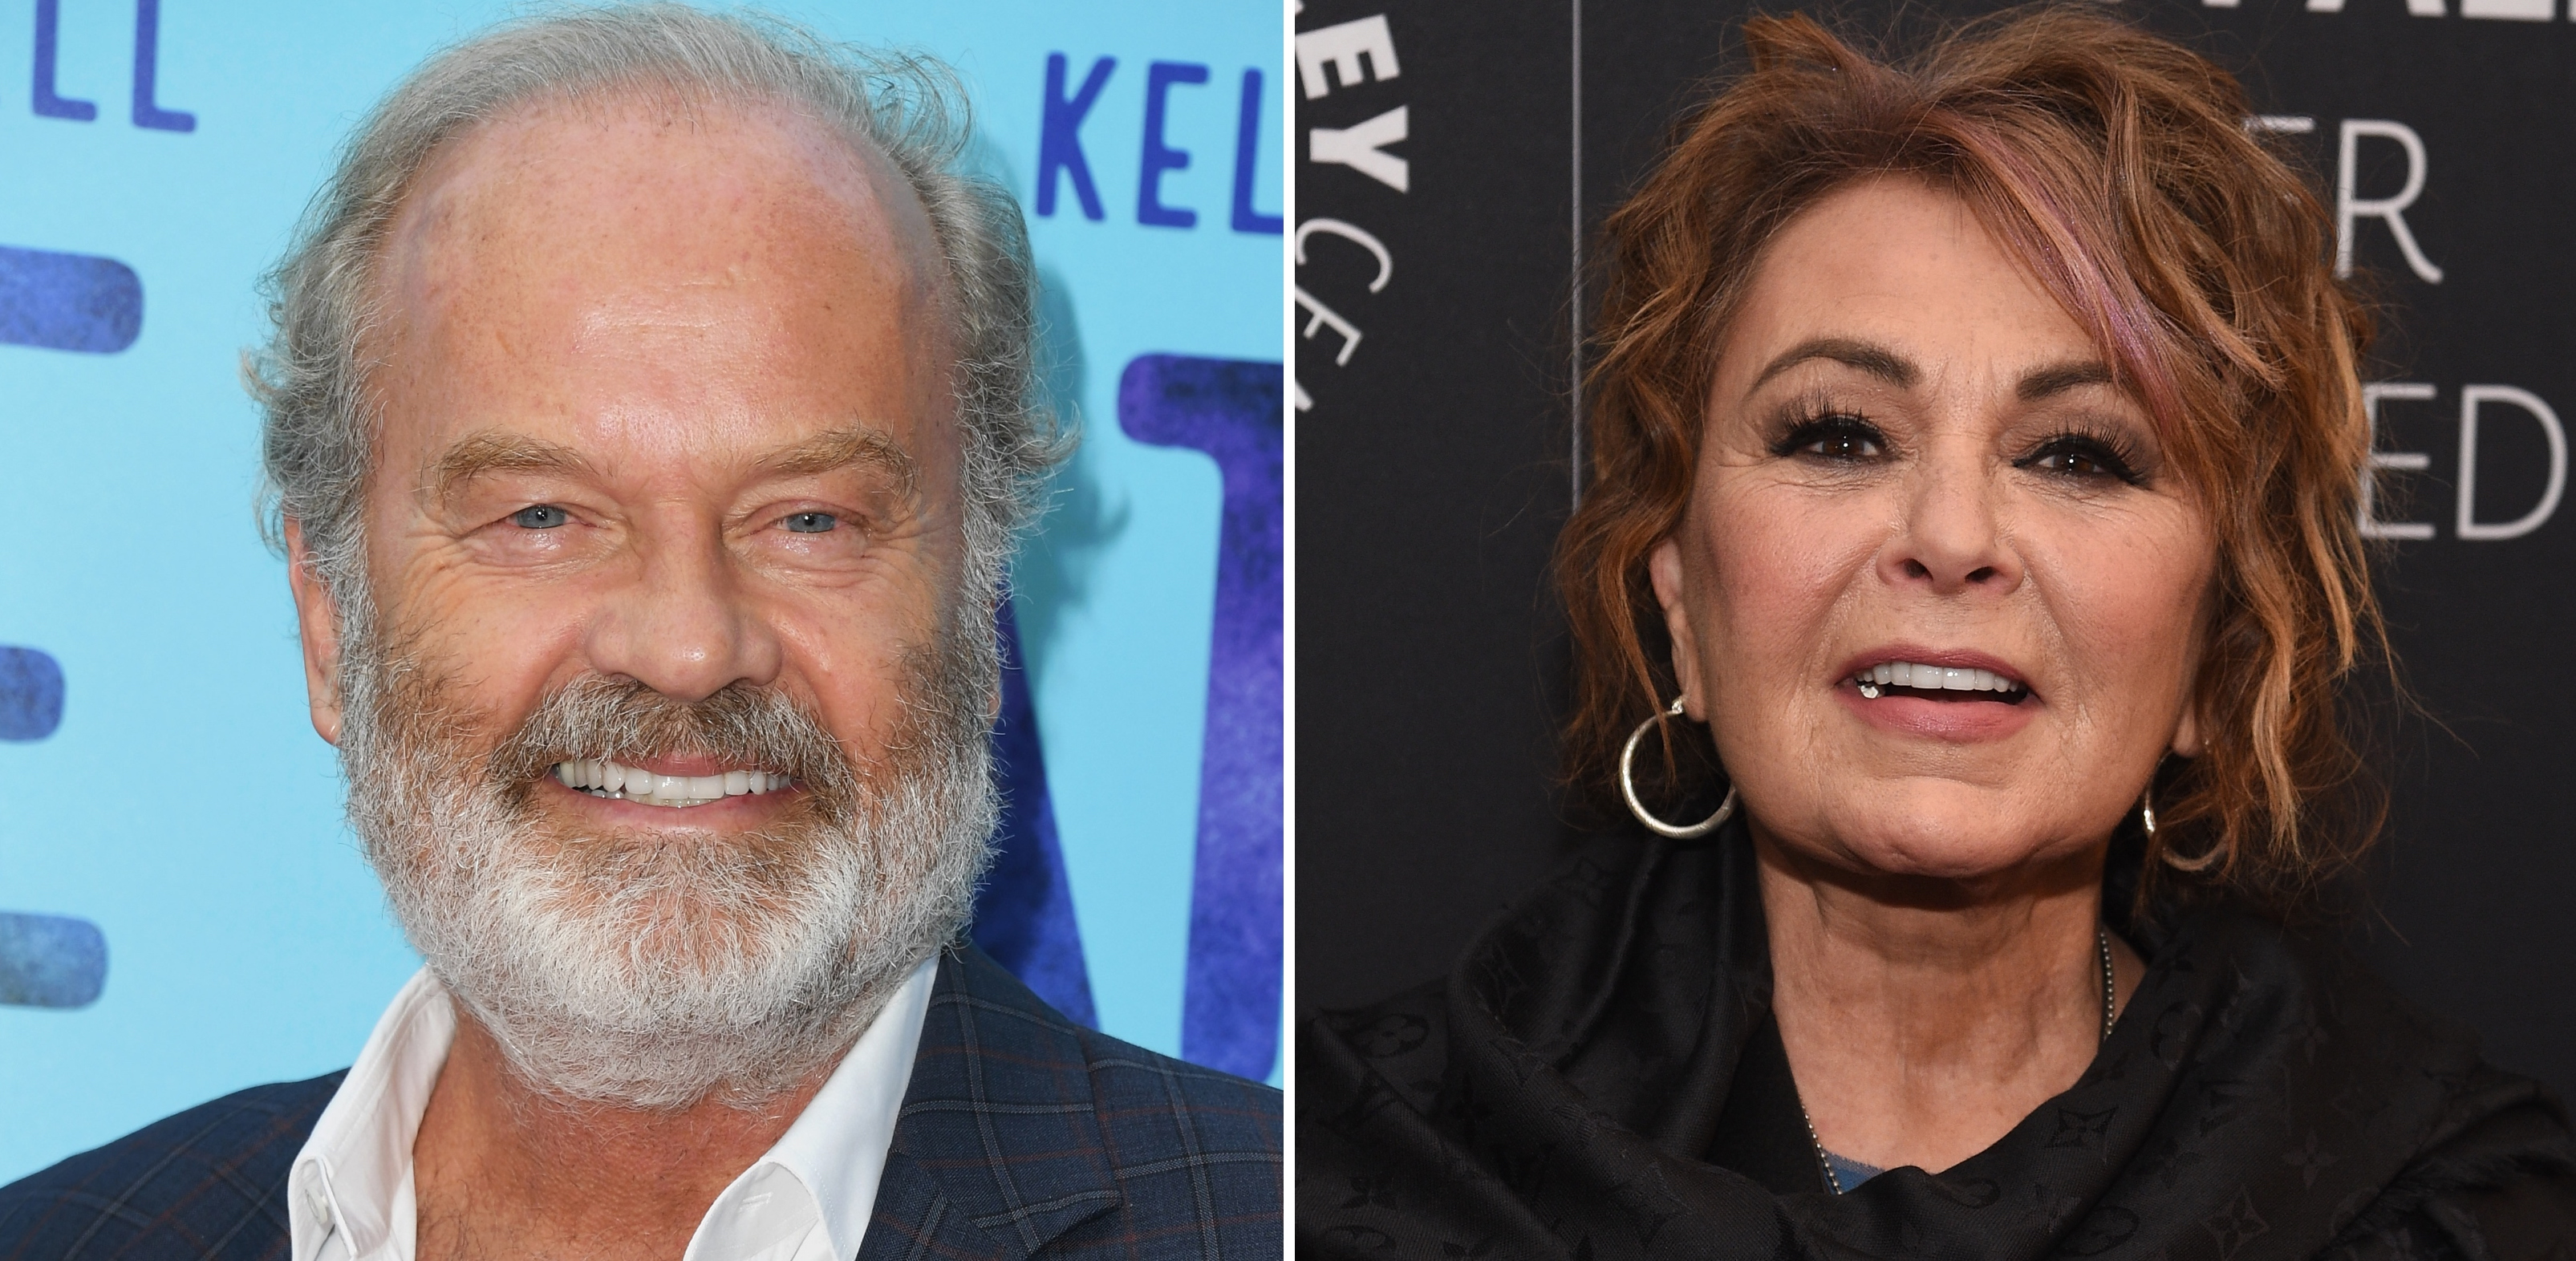 Kelsey Grammer on Roseanne Barr: 'I Think People Should Be Forgiven for Their Sins'